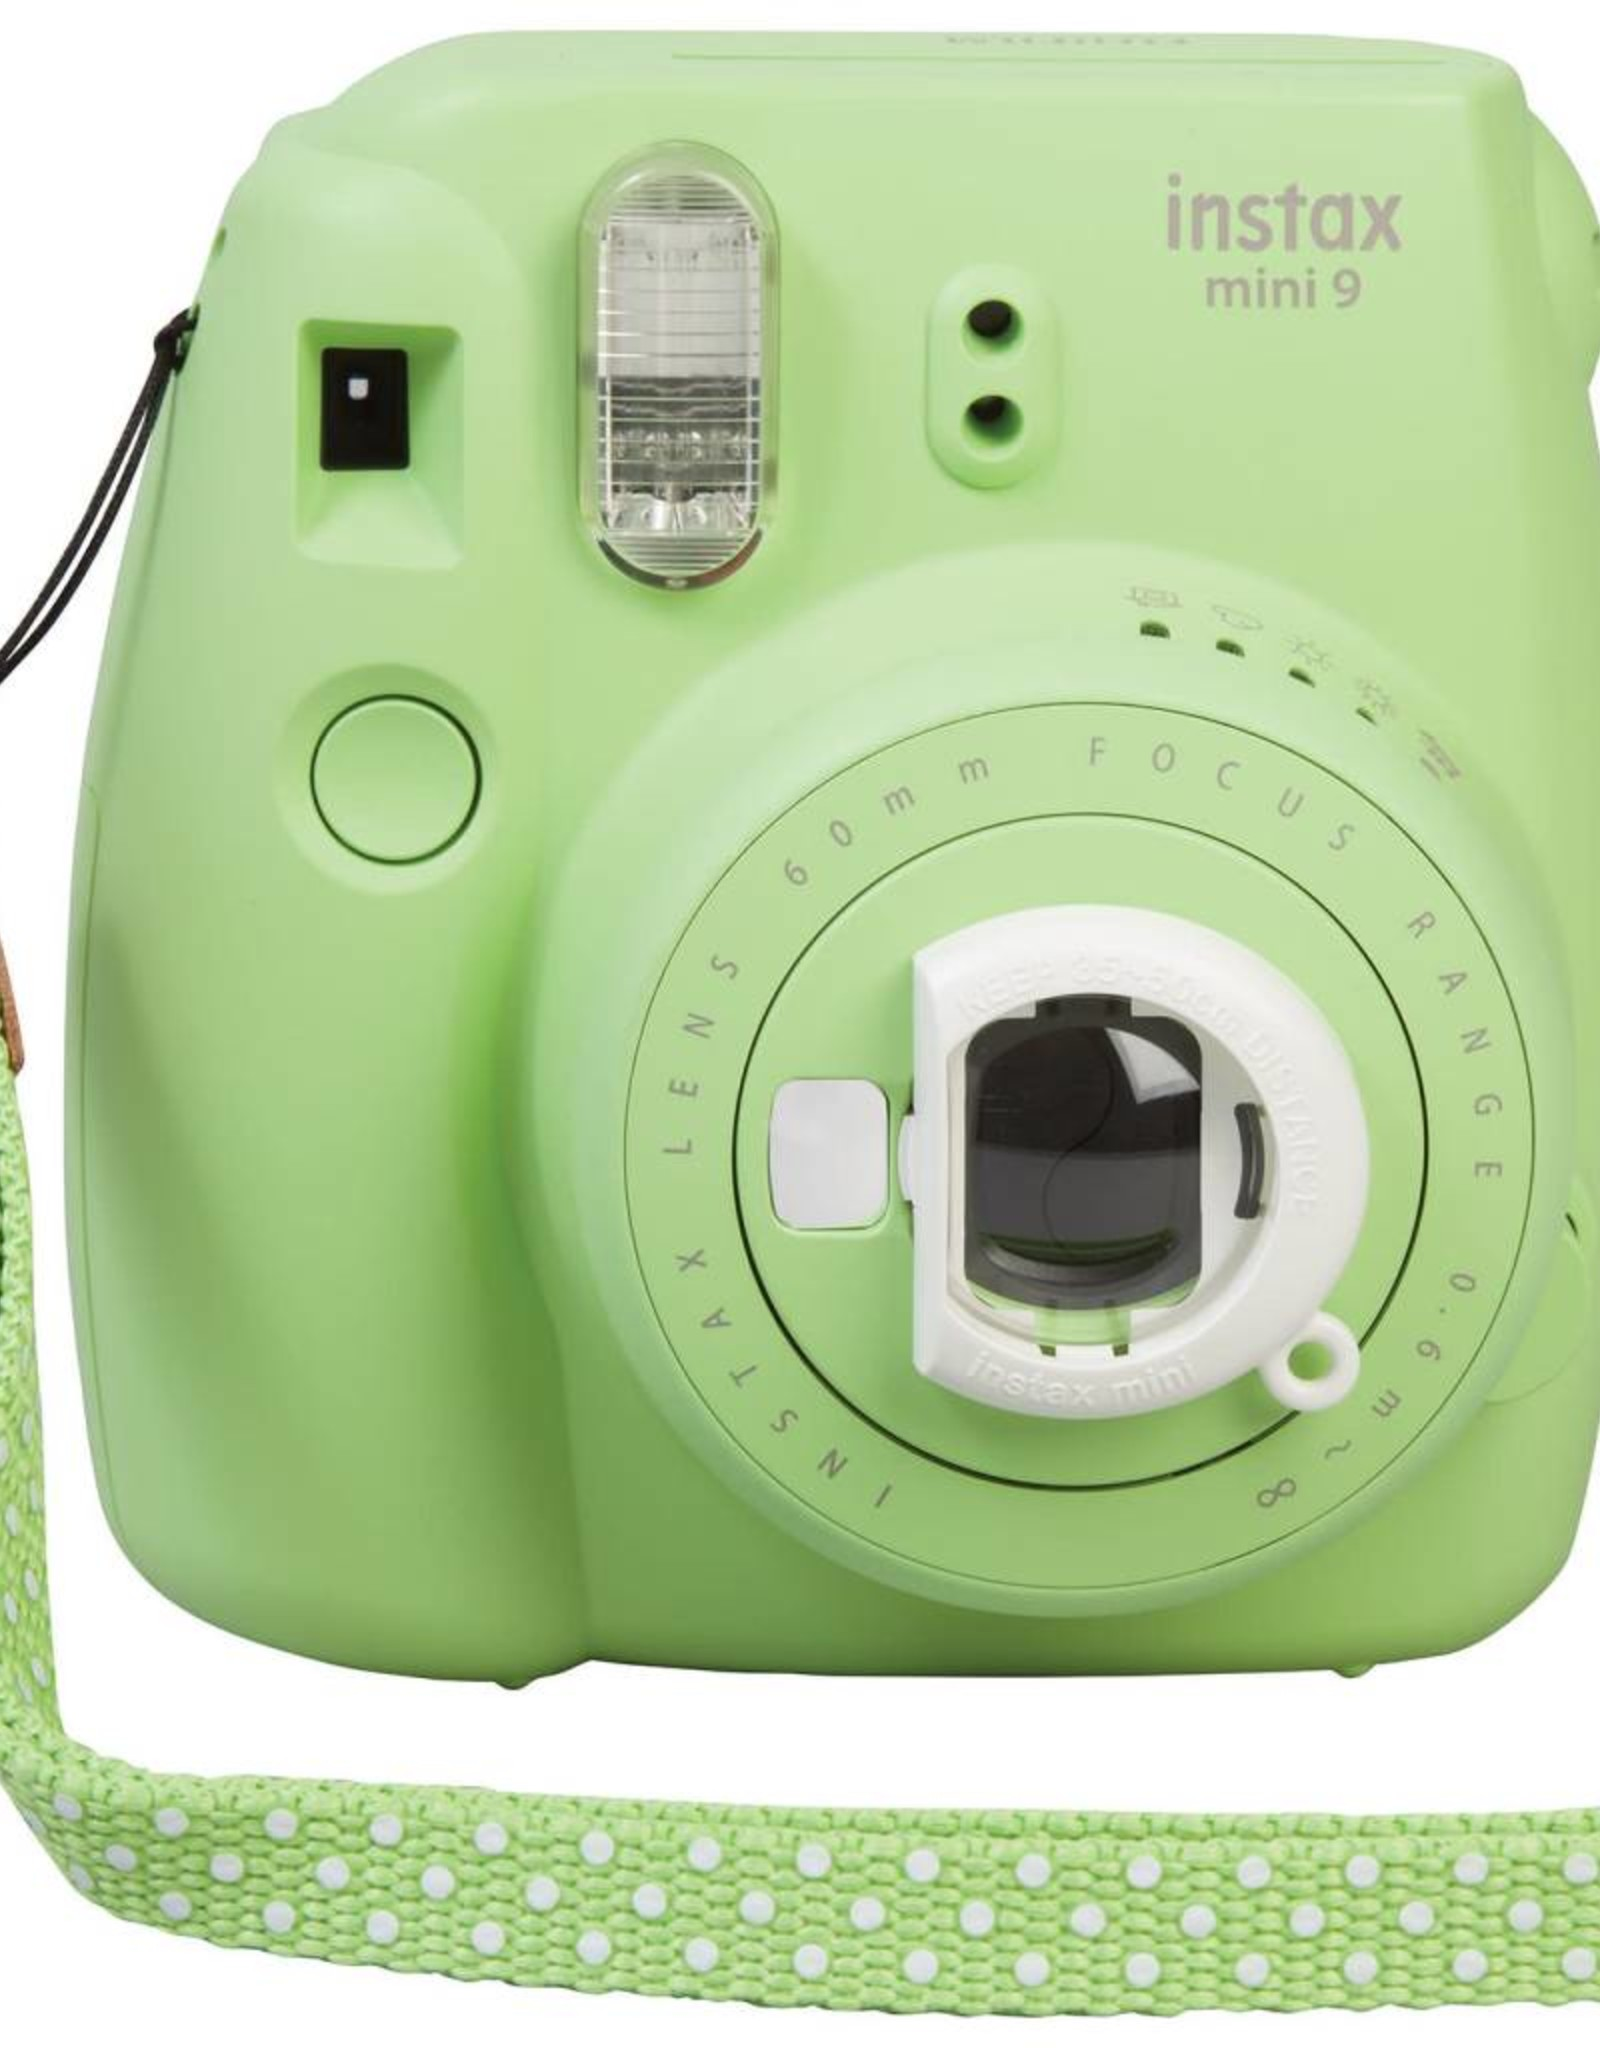 Instax //// Fujifilm Instax Mini 9 Instant Camera - Lime Green 600018154